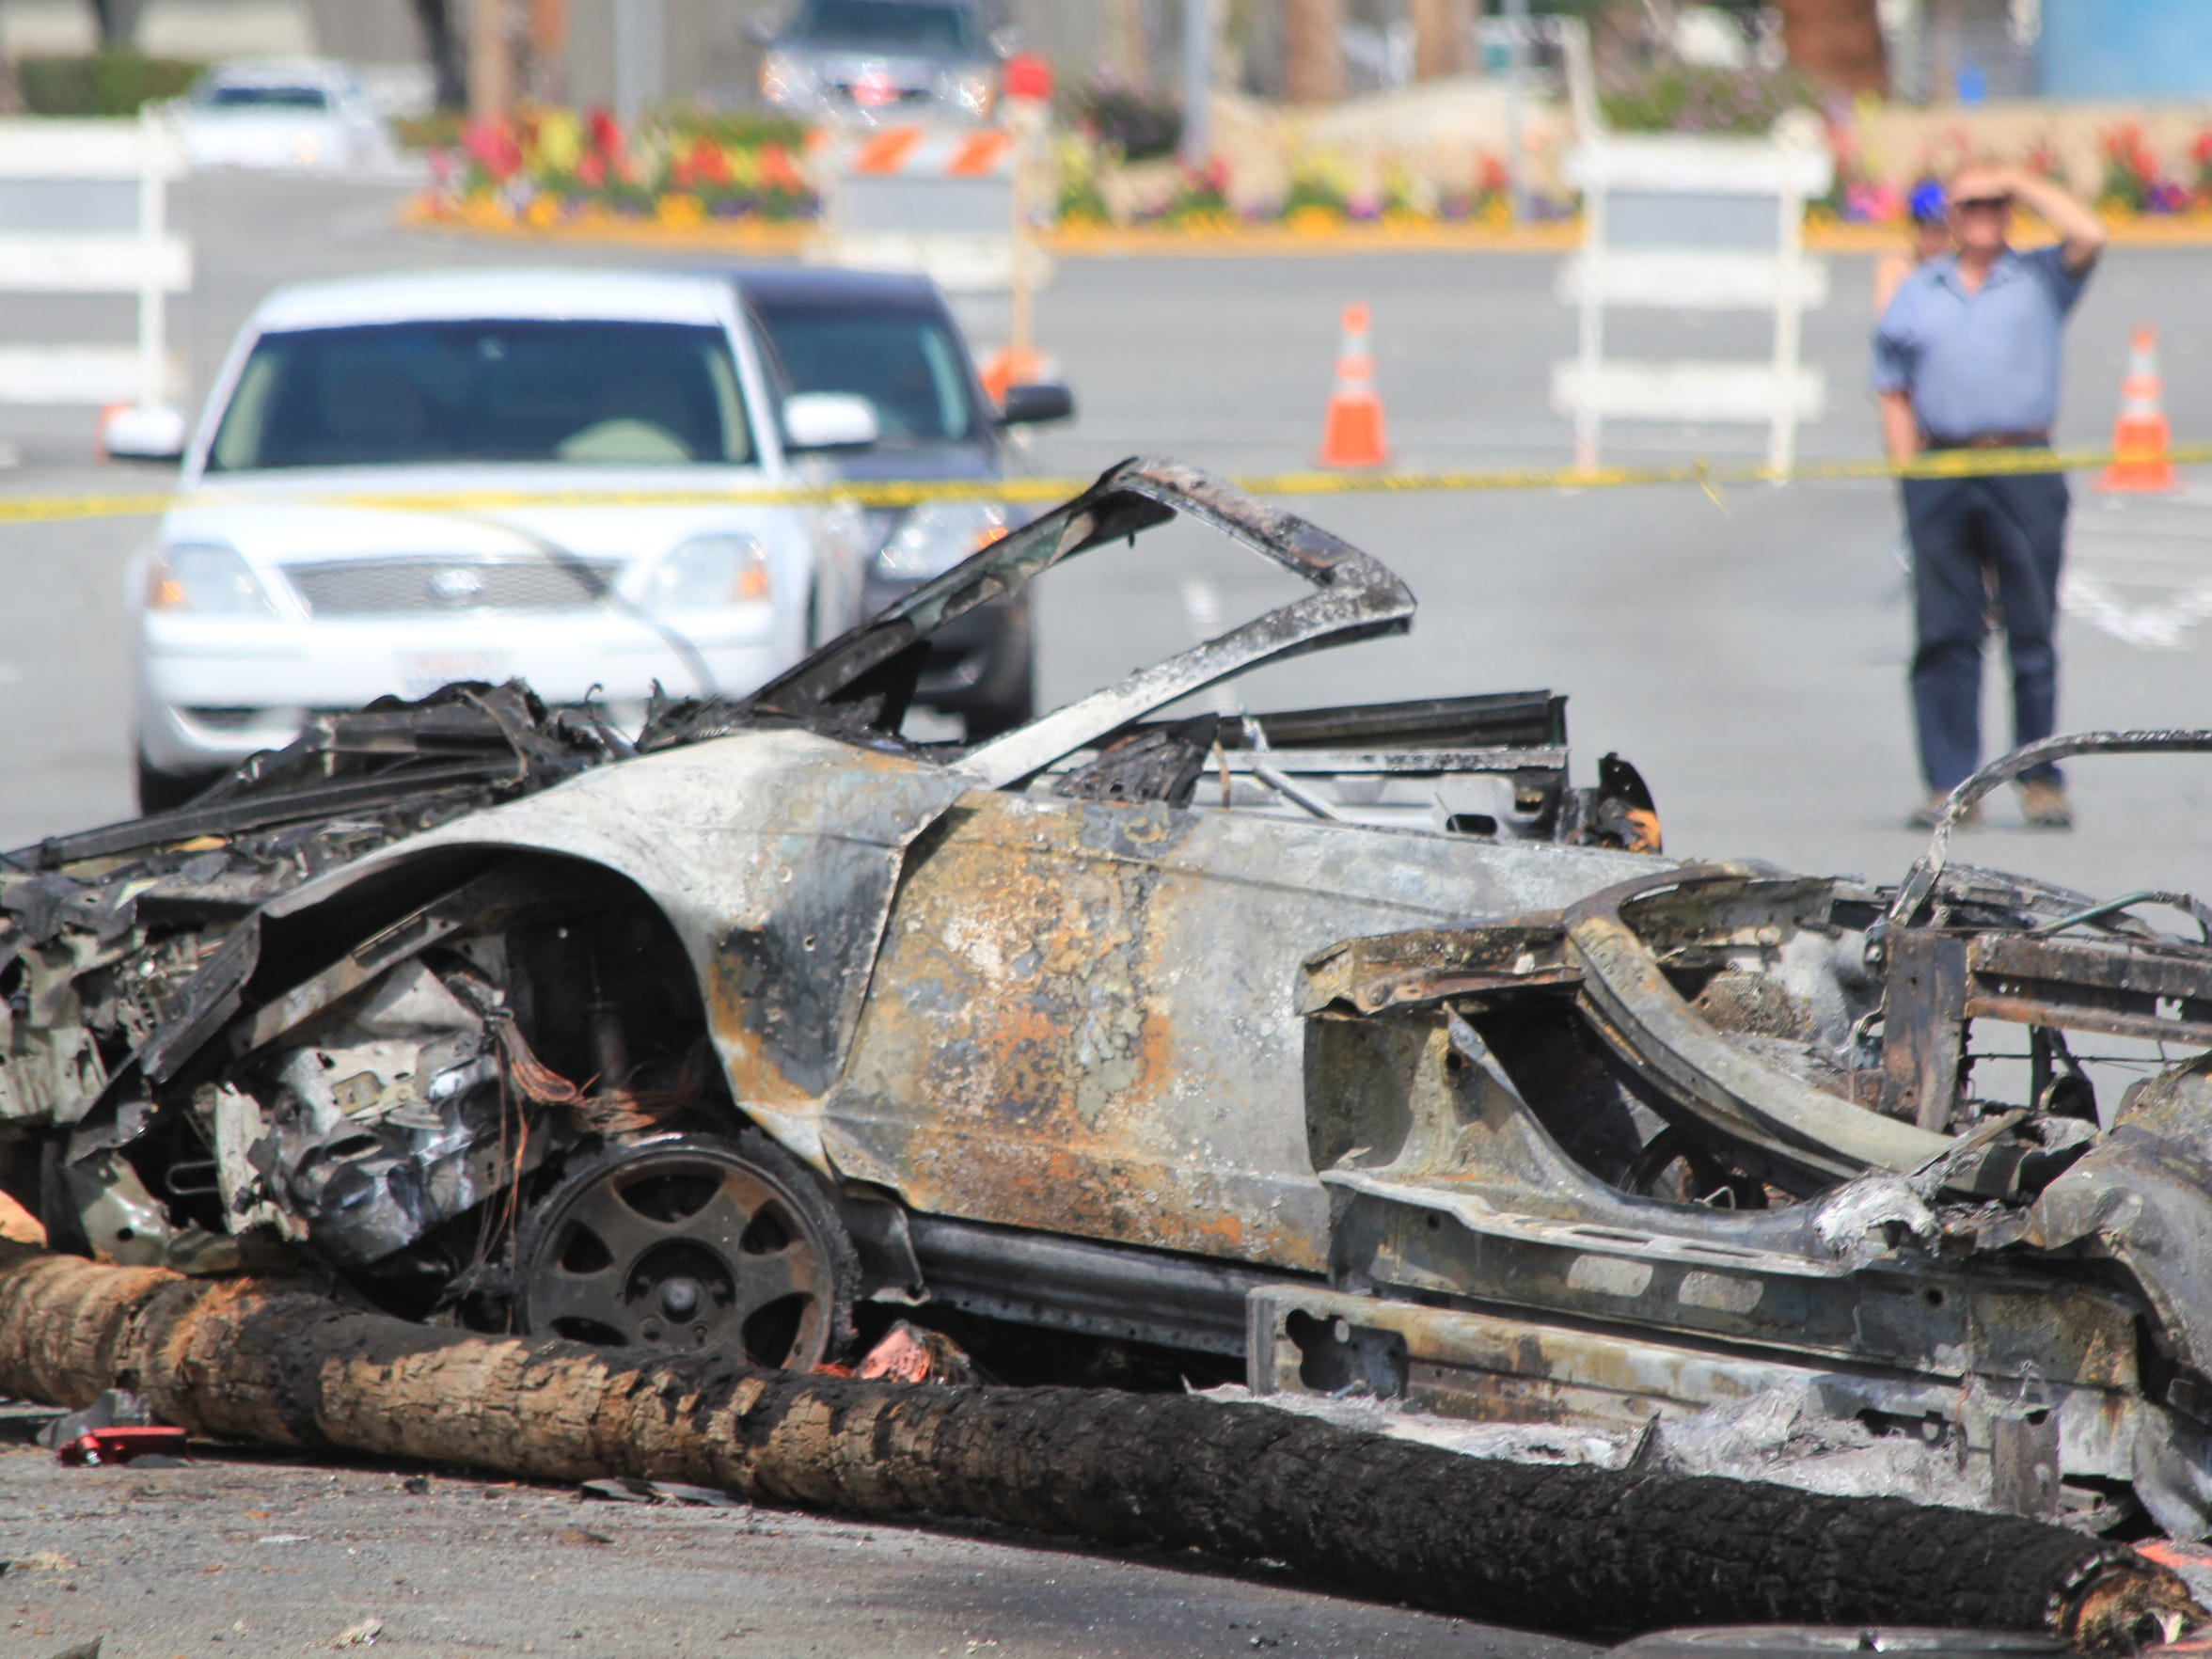 Wreckage of the chased vehicle involved in a fatal high speed puruit that killed Cathedral City officer Jermaine Gibson, and injured two others in Palm Springs, March 18, 2011.